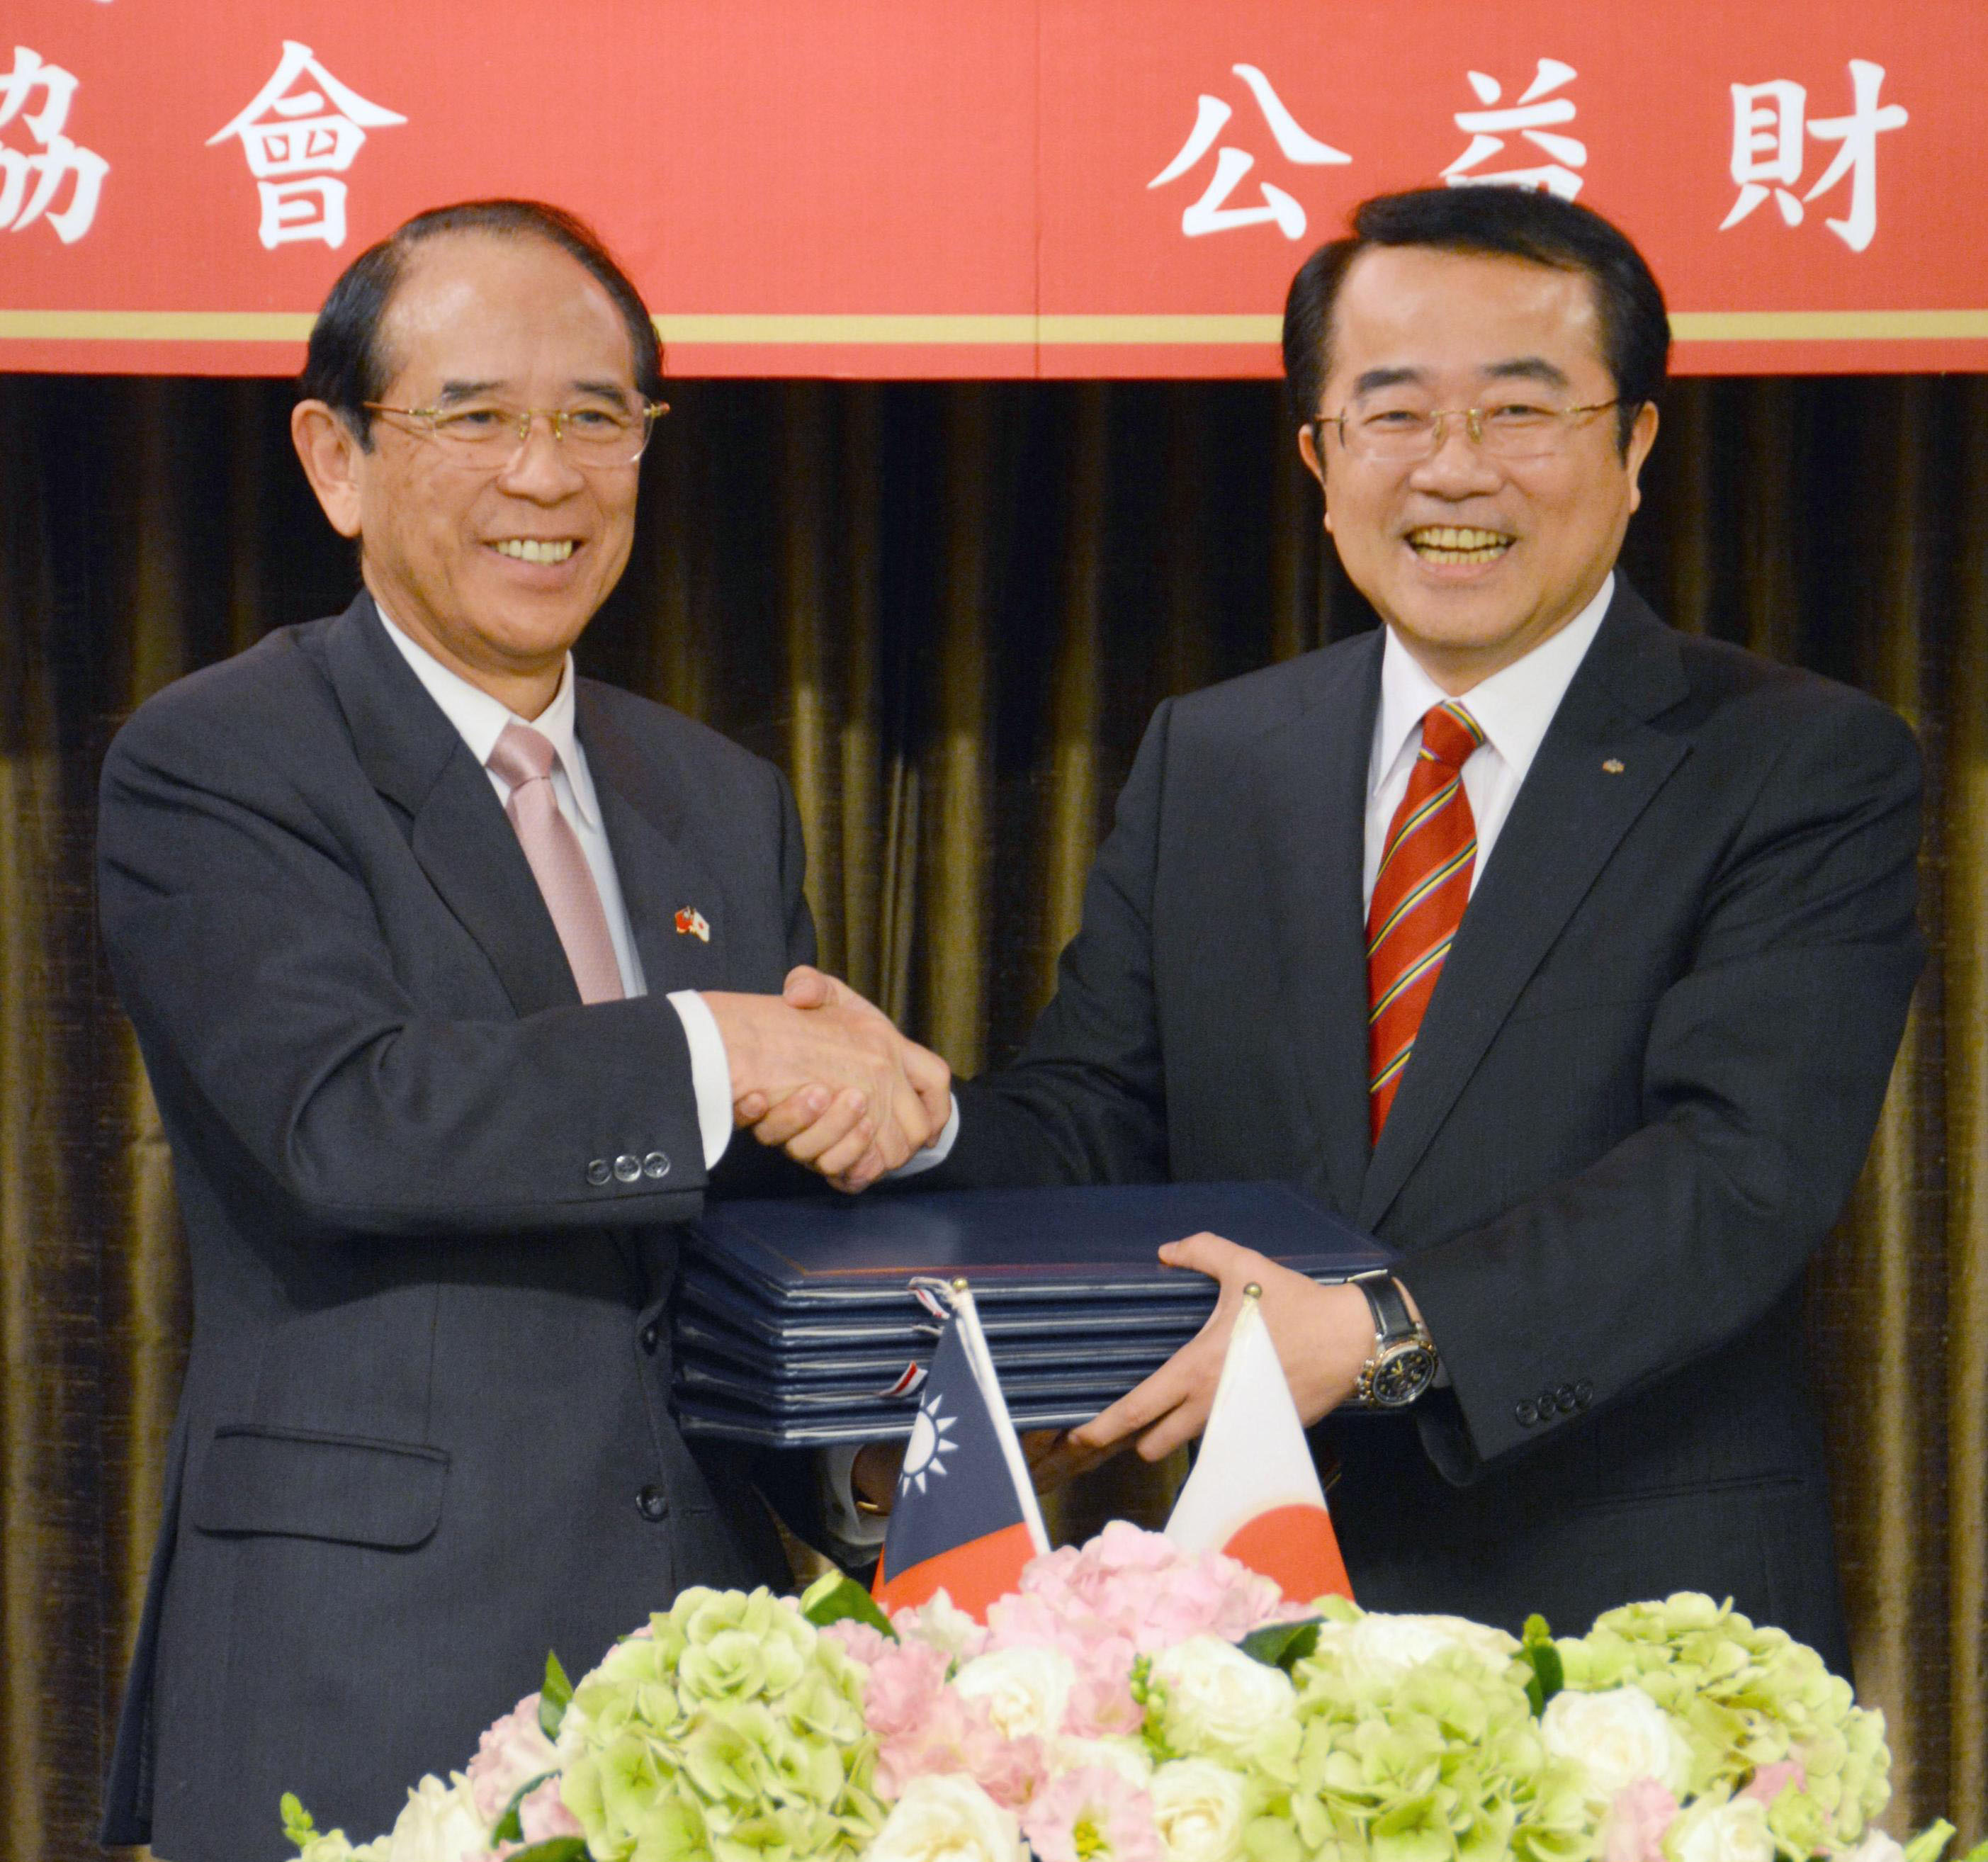 New chapter: Mitsuo Ohashi (left), chairman of the Japan Interchange Association, seals trade deals with Taiwan's East Asian Relations Commission Chairman Lee Chia-chin at a Taipei hotel Tuesday | KYODO